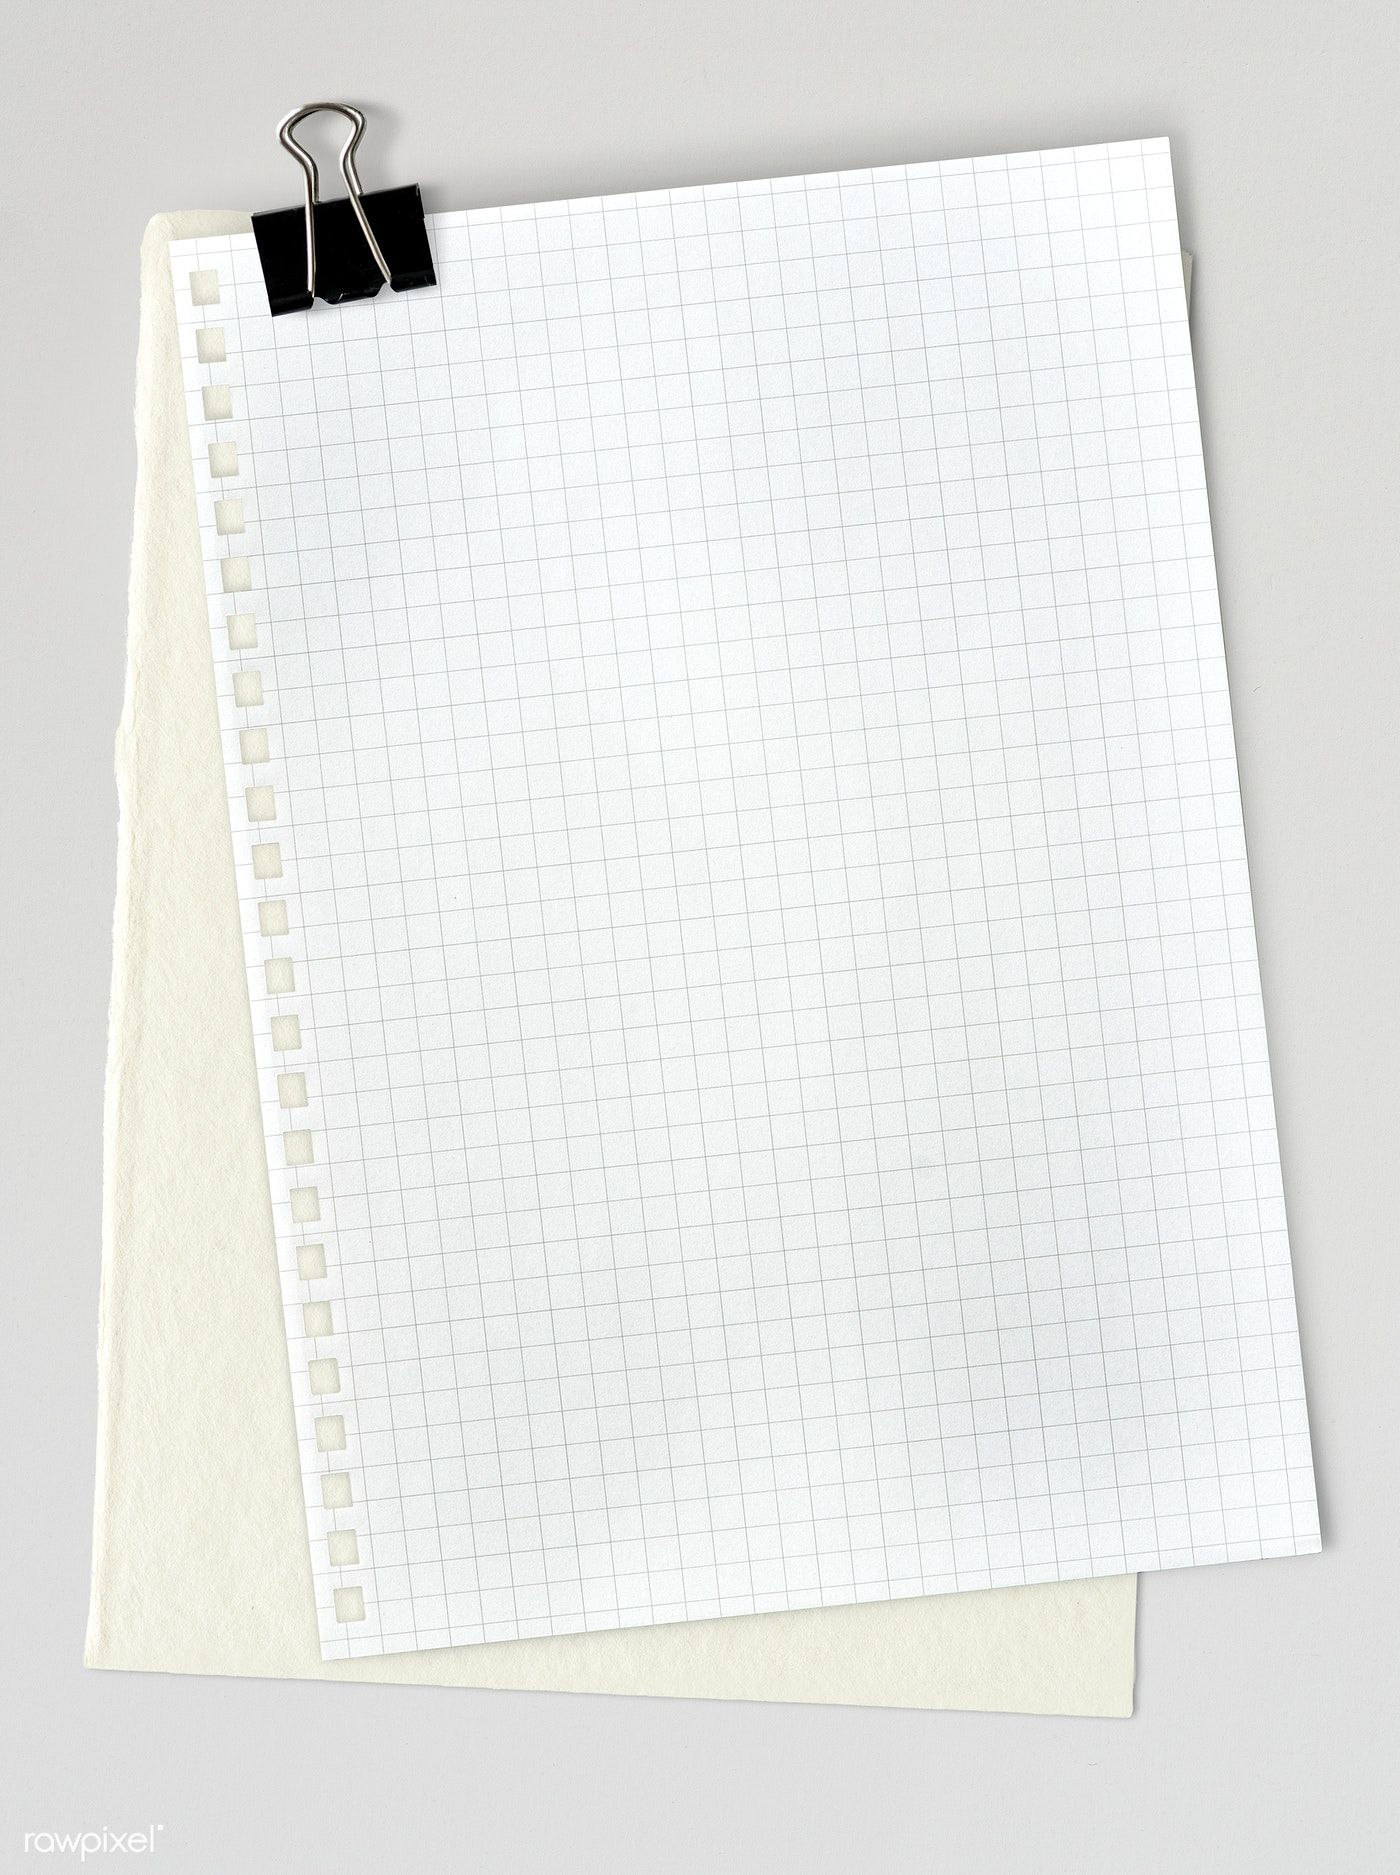 Download premium psd of Blank white grid paper template